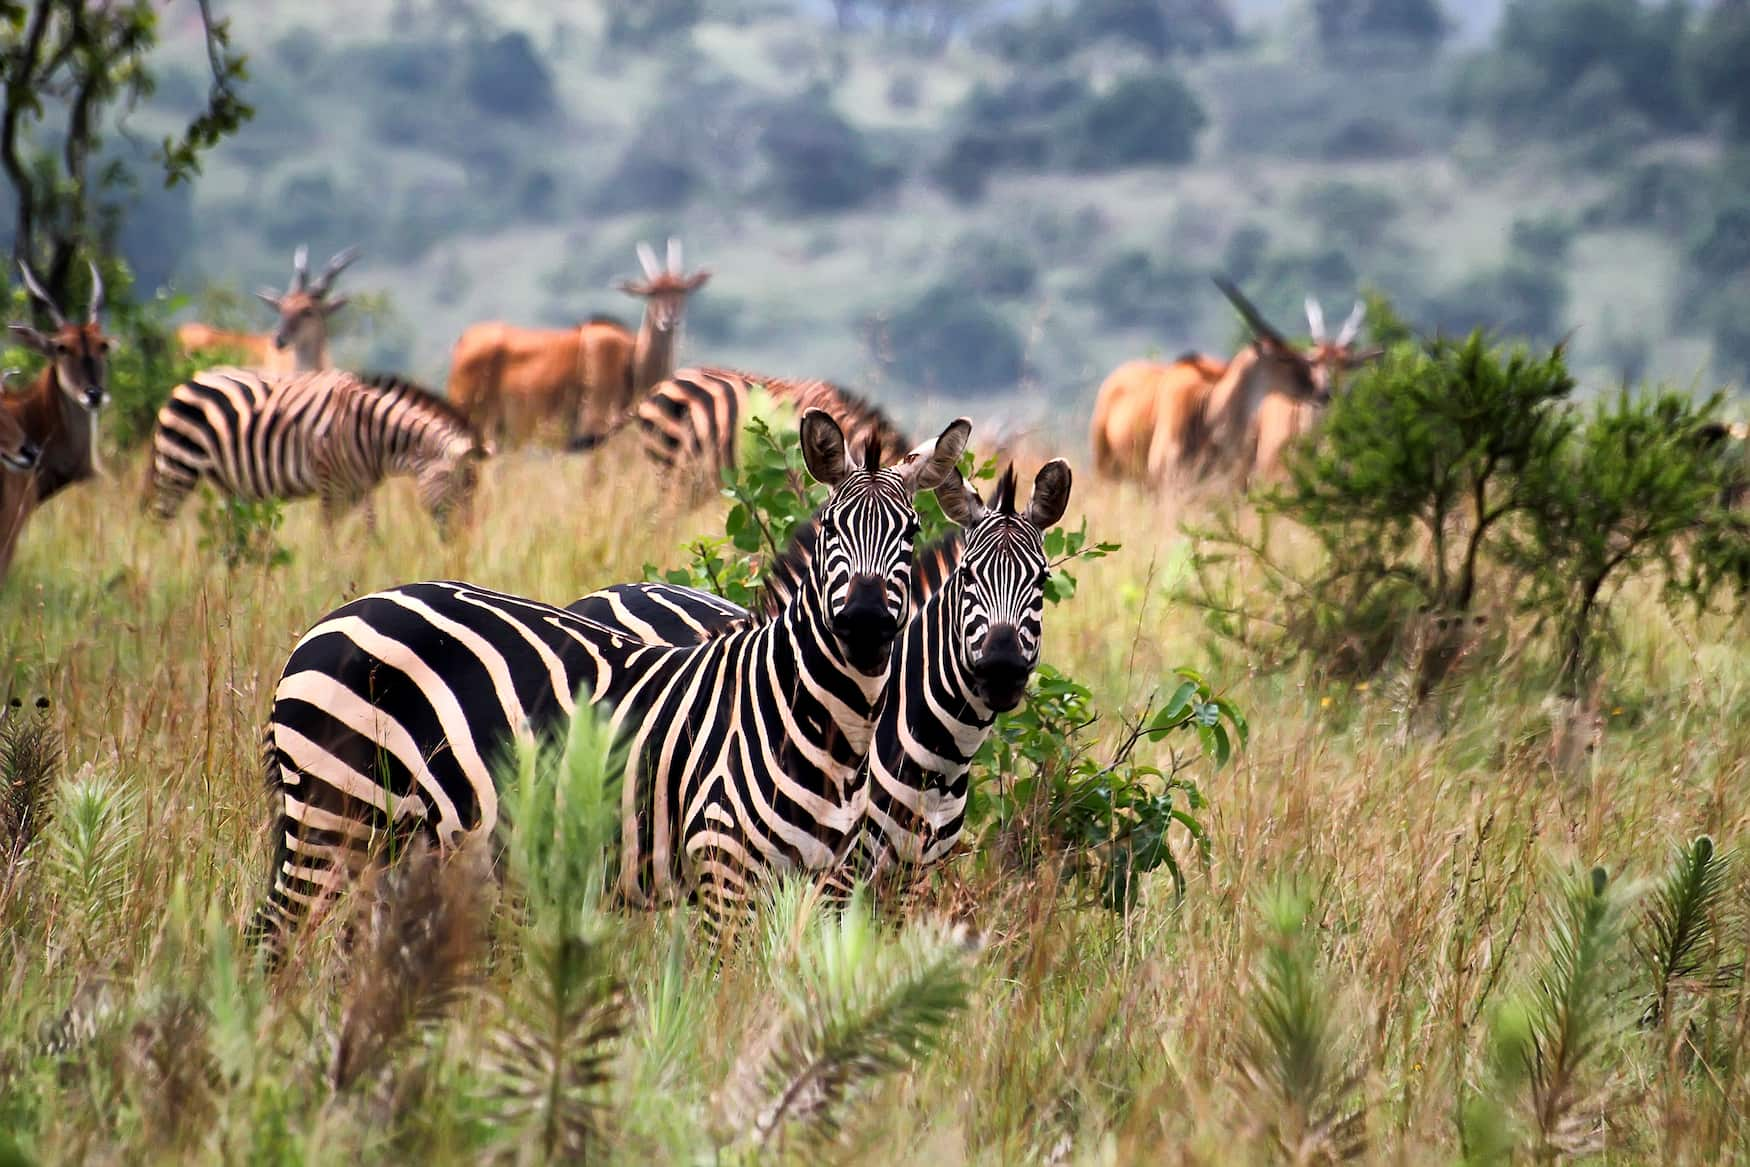 Zebras in Nationalpark iN Ruanda